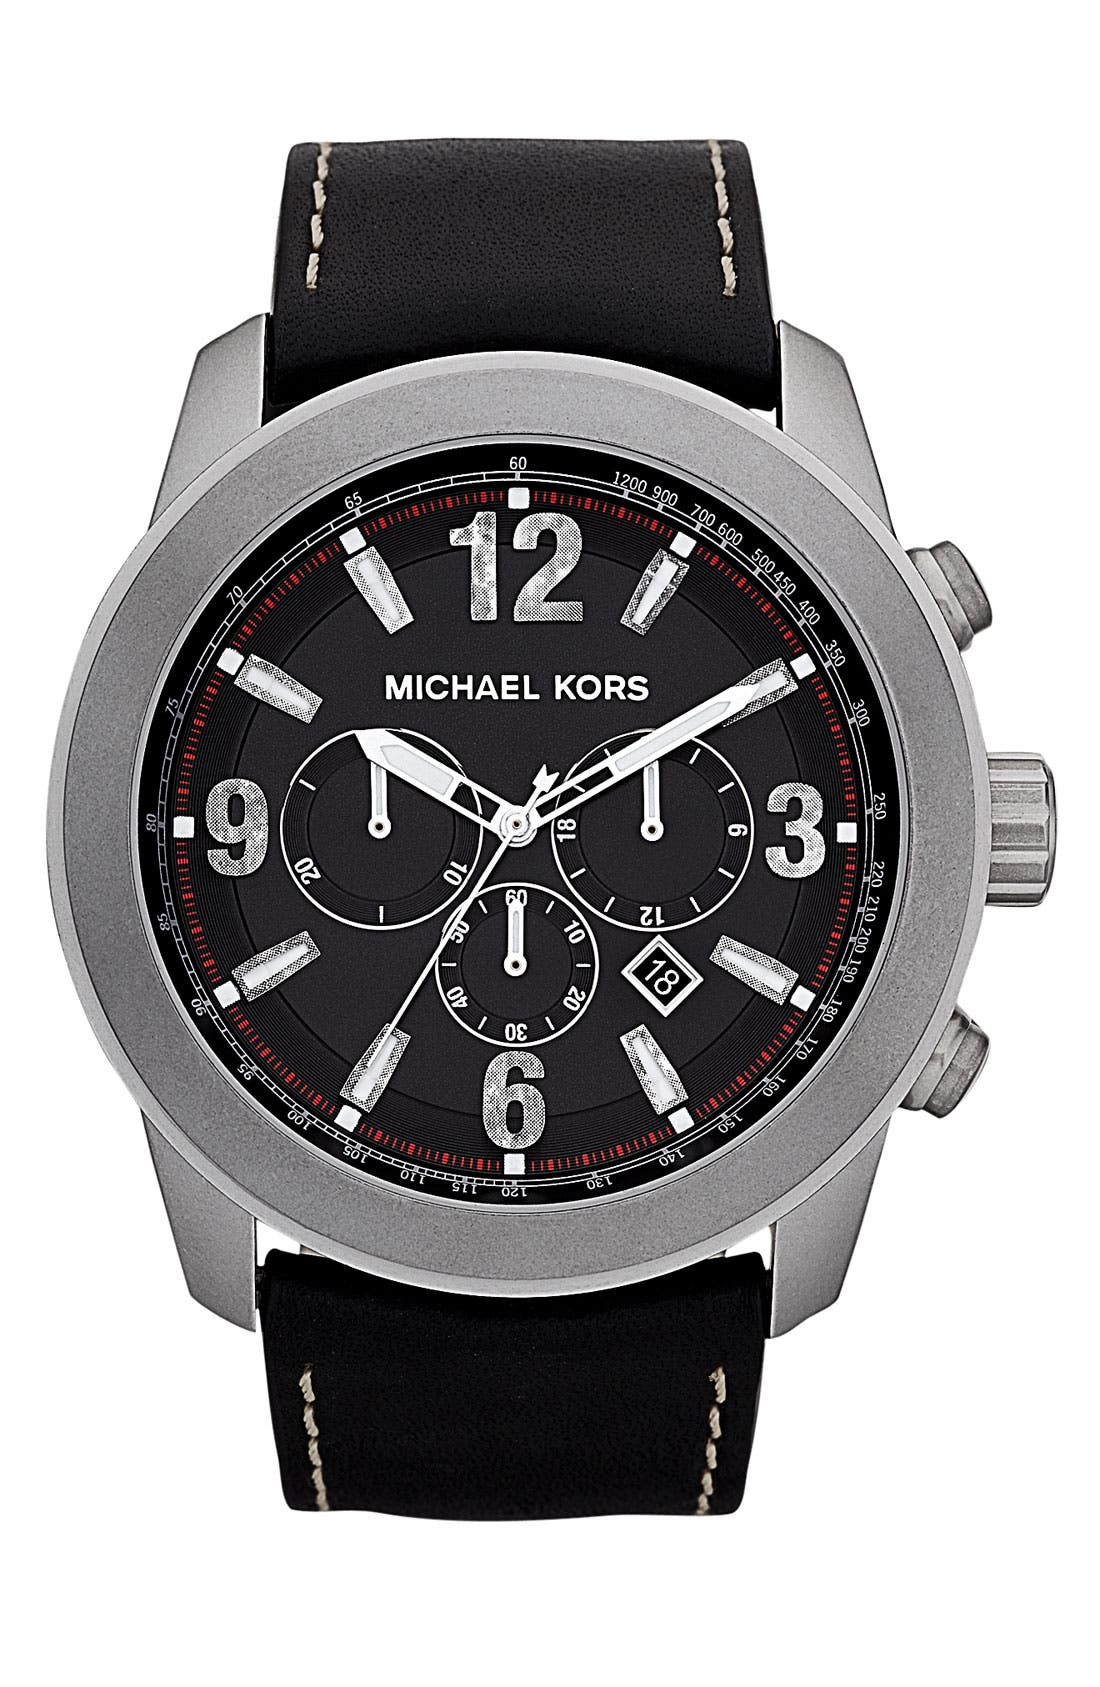 Main Image - Michael Kors 'Runway - Extra Large' Leather Strap Watch